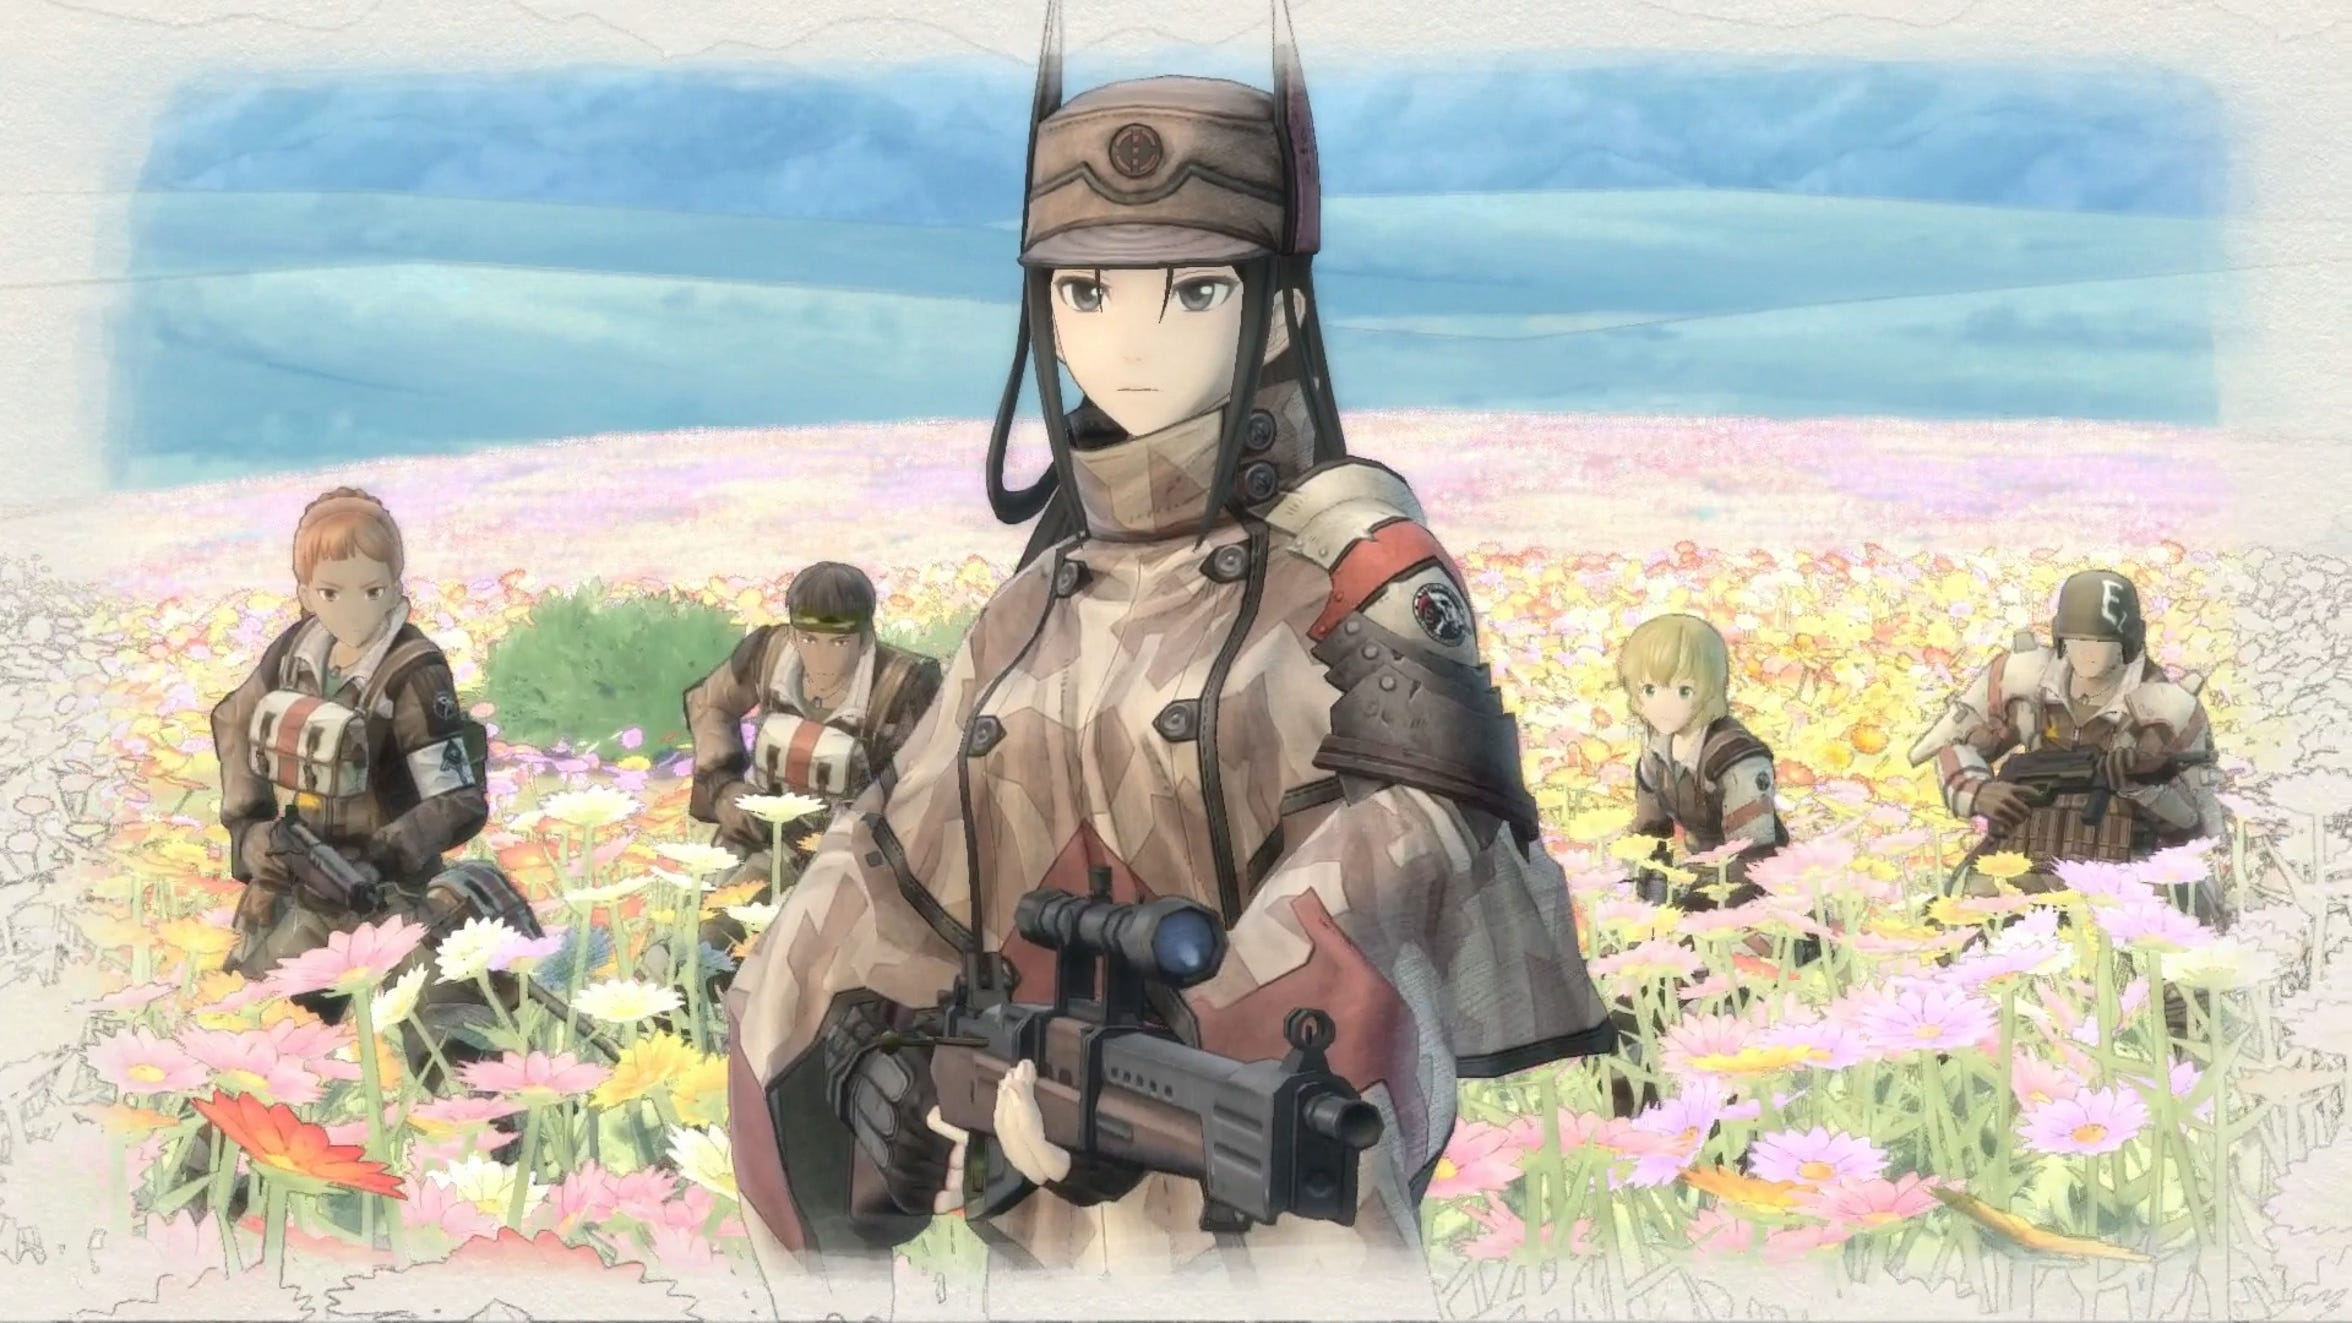 Kai and Squad E get ready to fight the Empire's soldiers at the flower fields of Milt in Valkyria Chronicles 4.